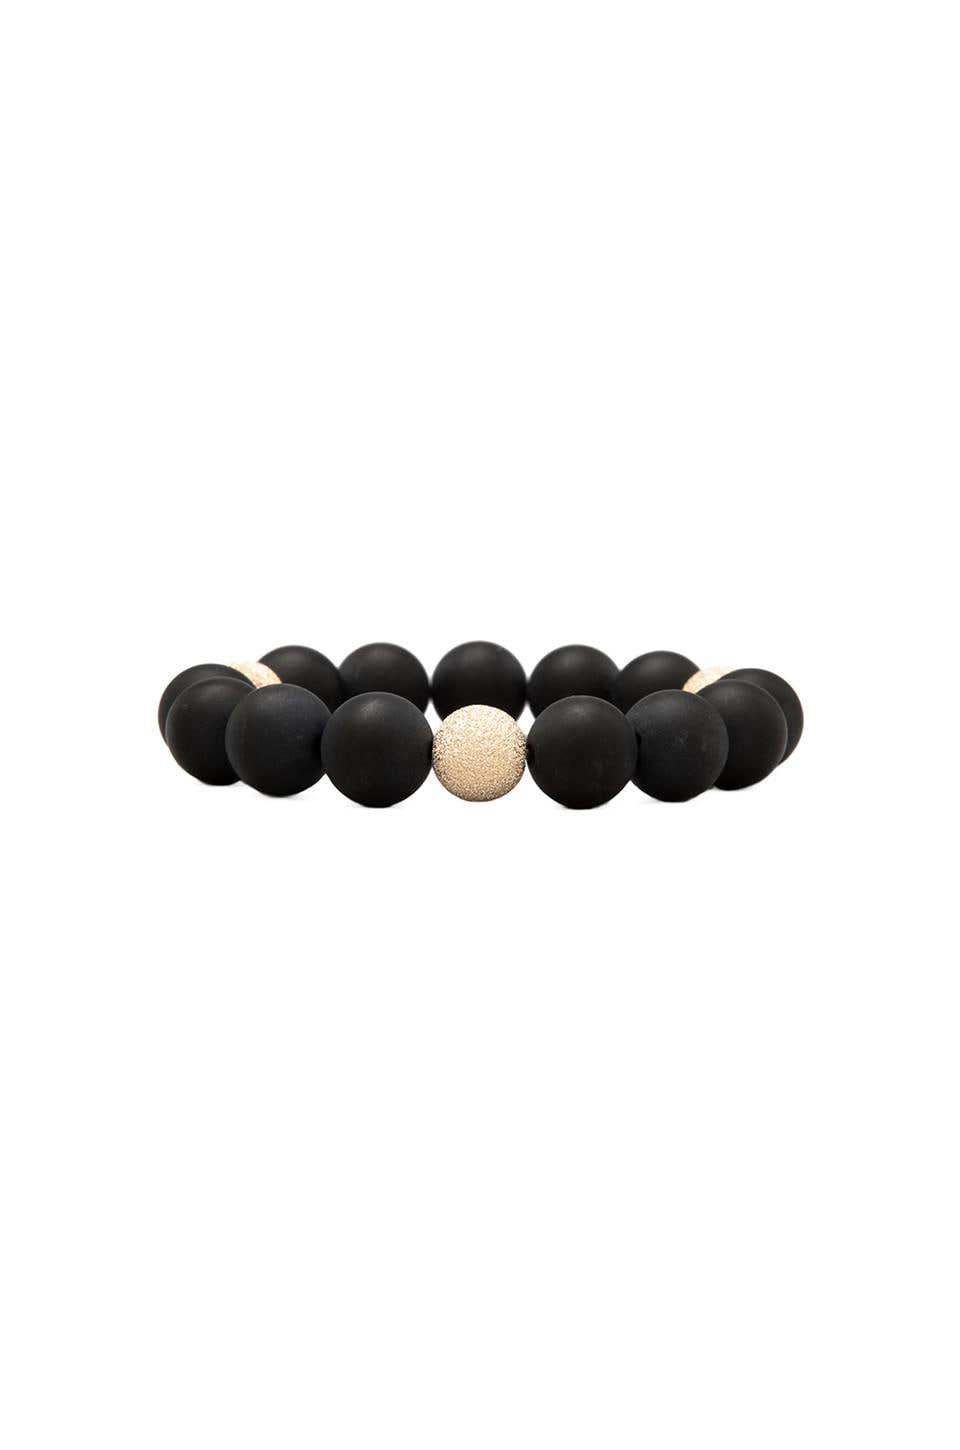 JNB Round Smooth Beaded Bracelet in Matte Black Onyx